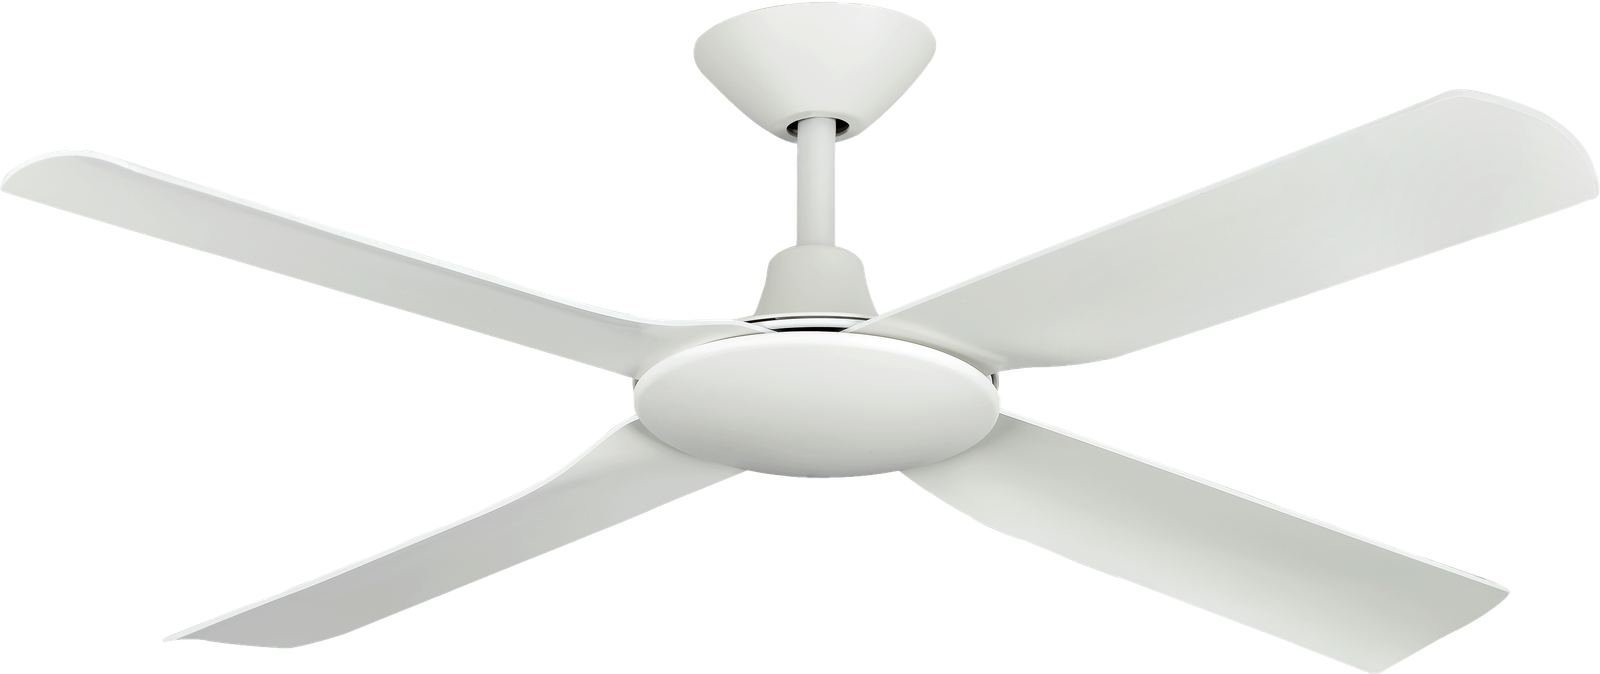 Next Creation White with White Blades Ceiling Fan